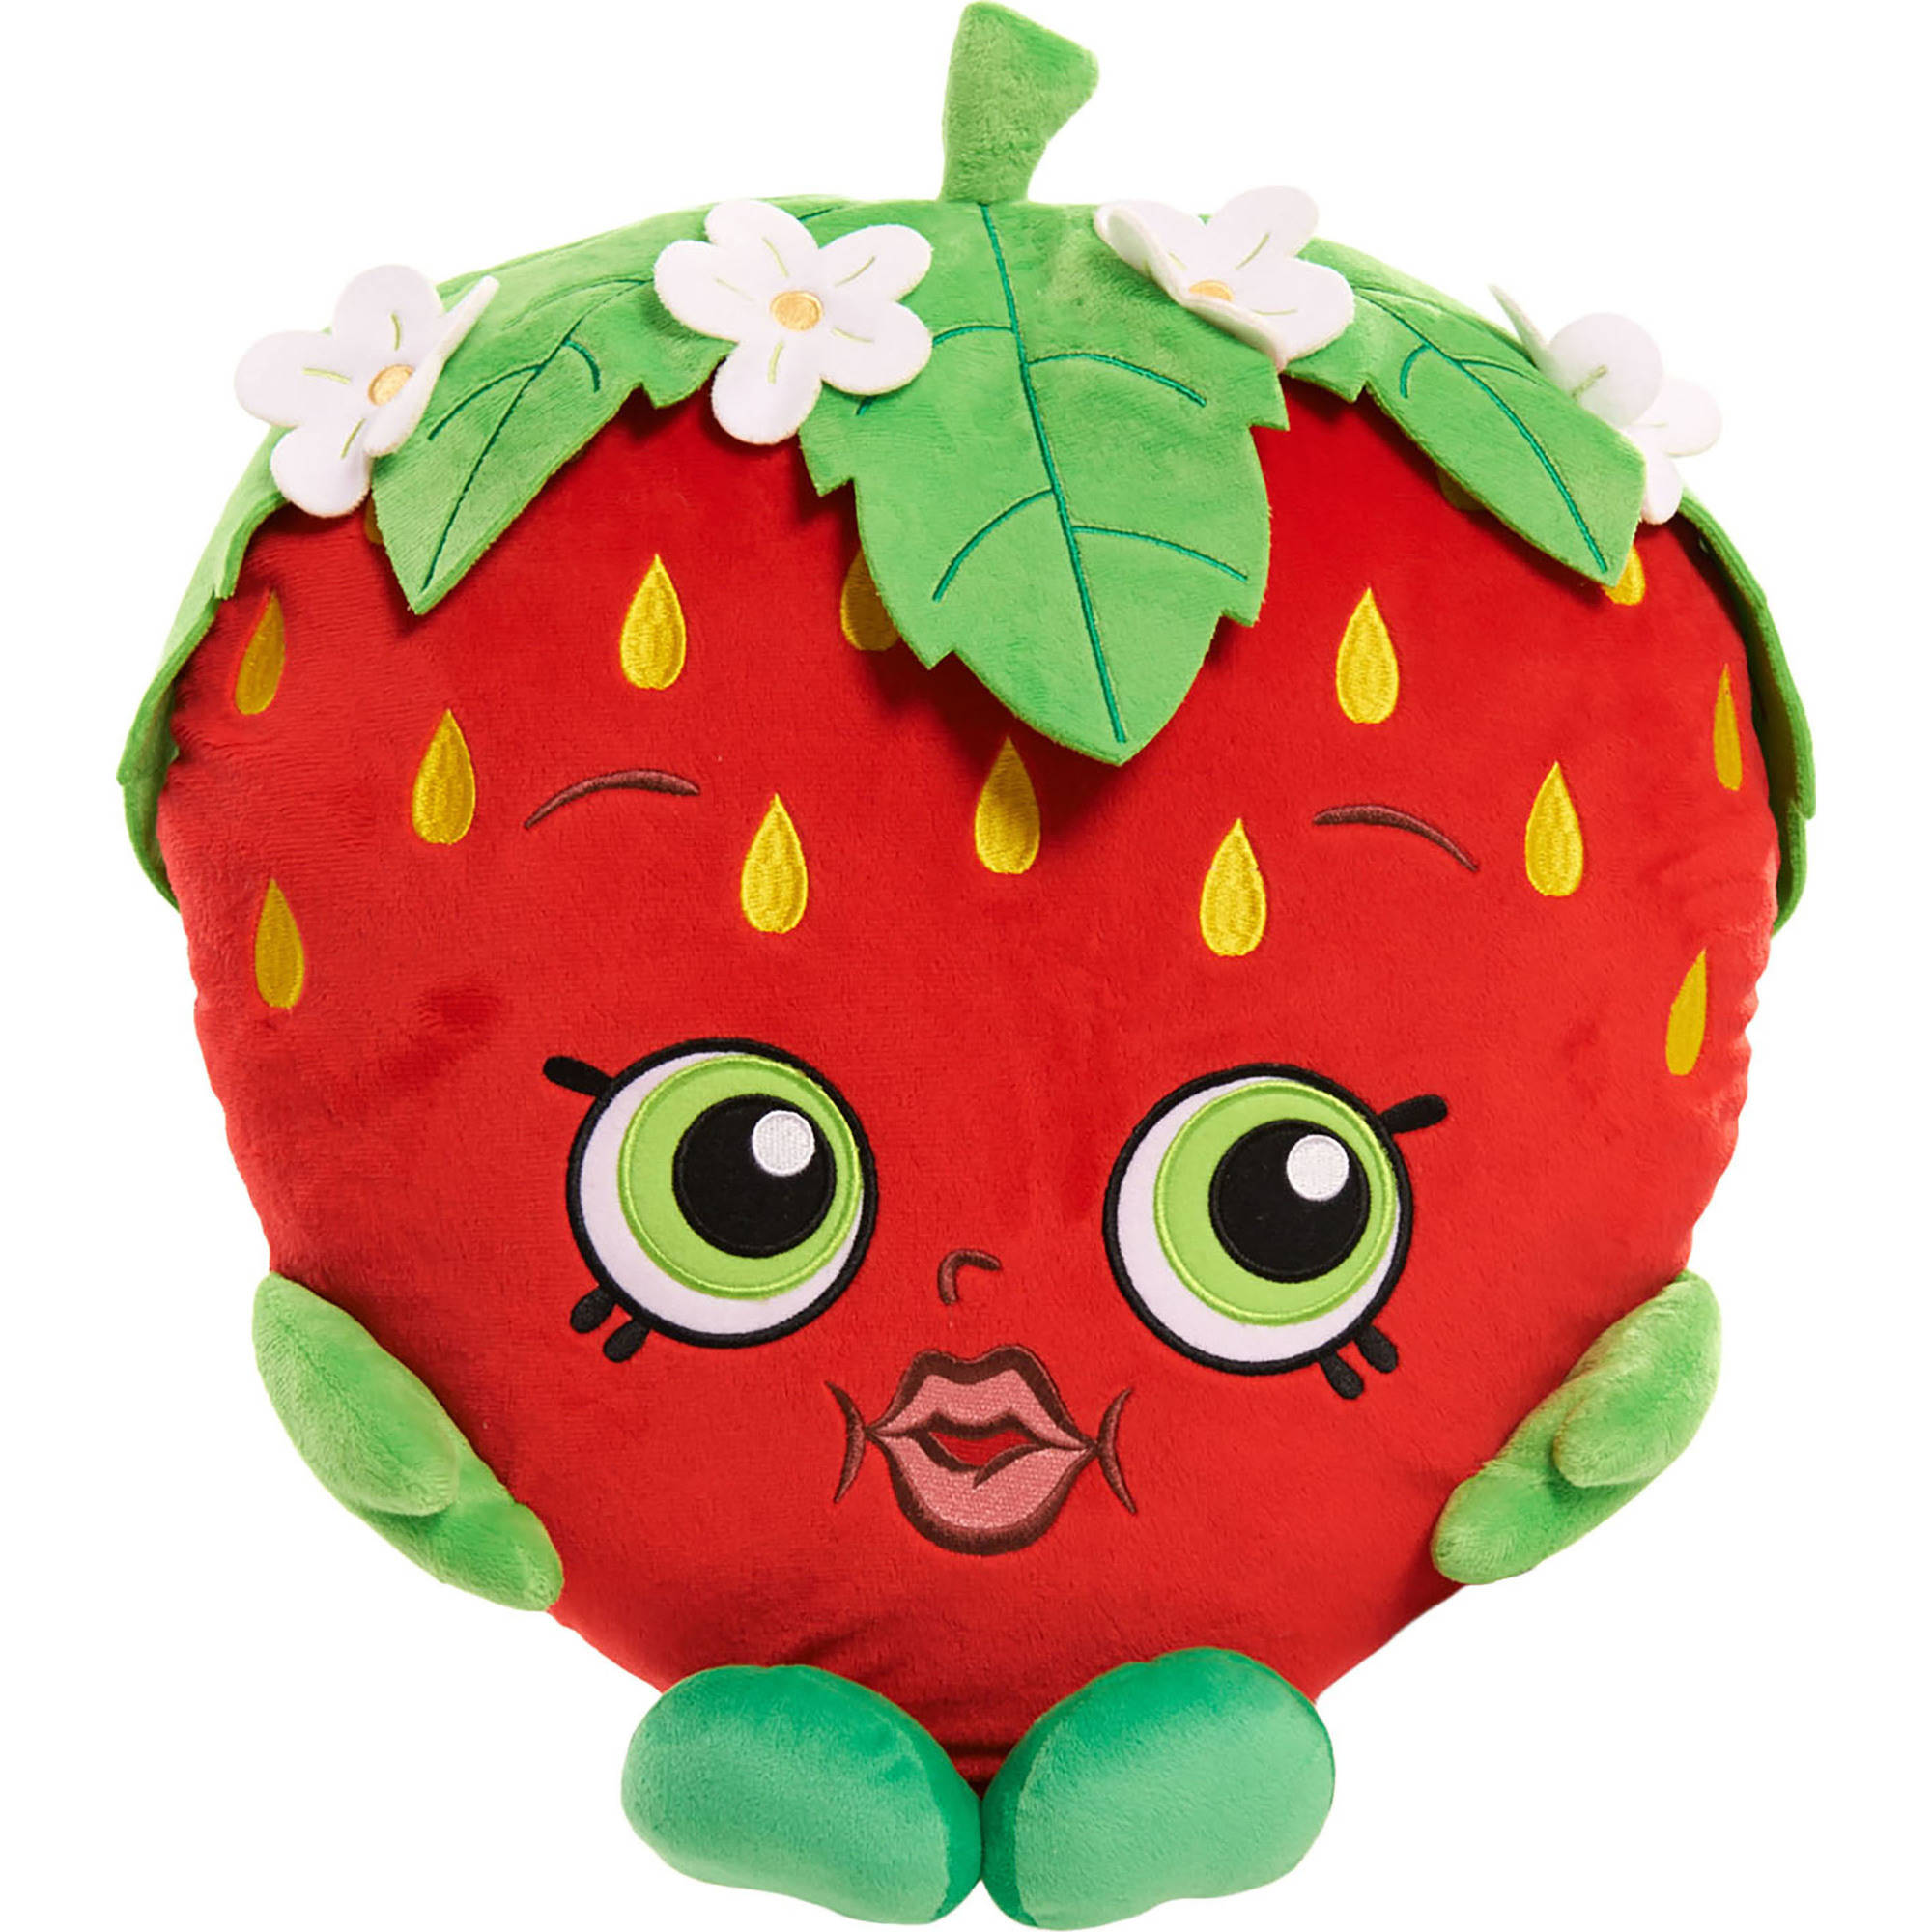 Shopkins Cuddle Plush, Strawberry Kiss